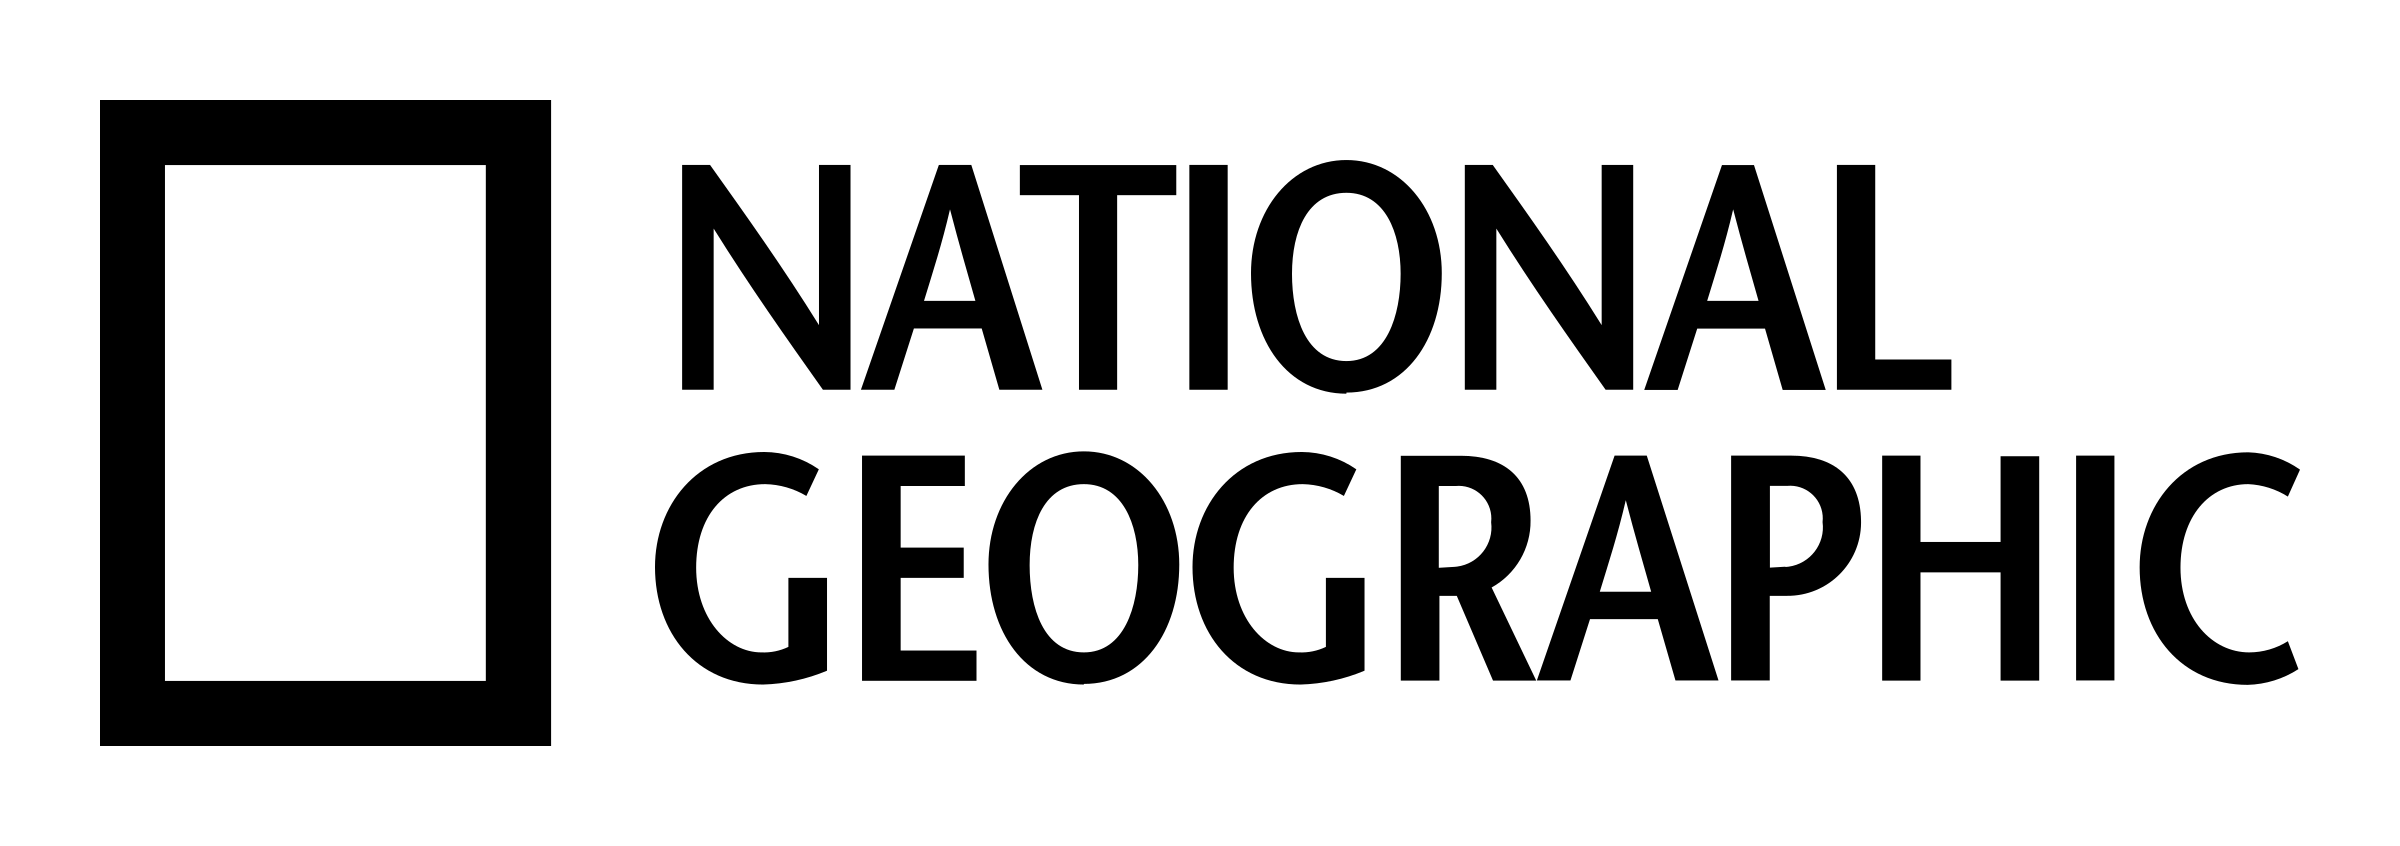 national-geographic-logo-black-and-white.png